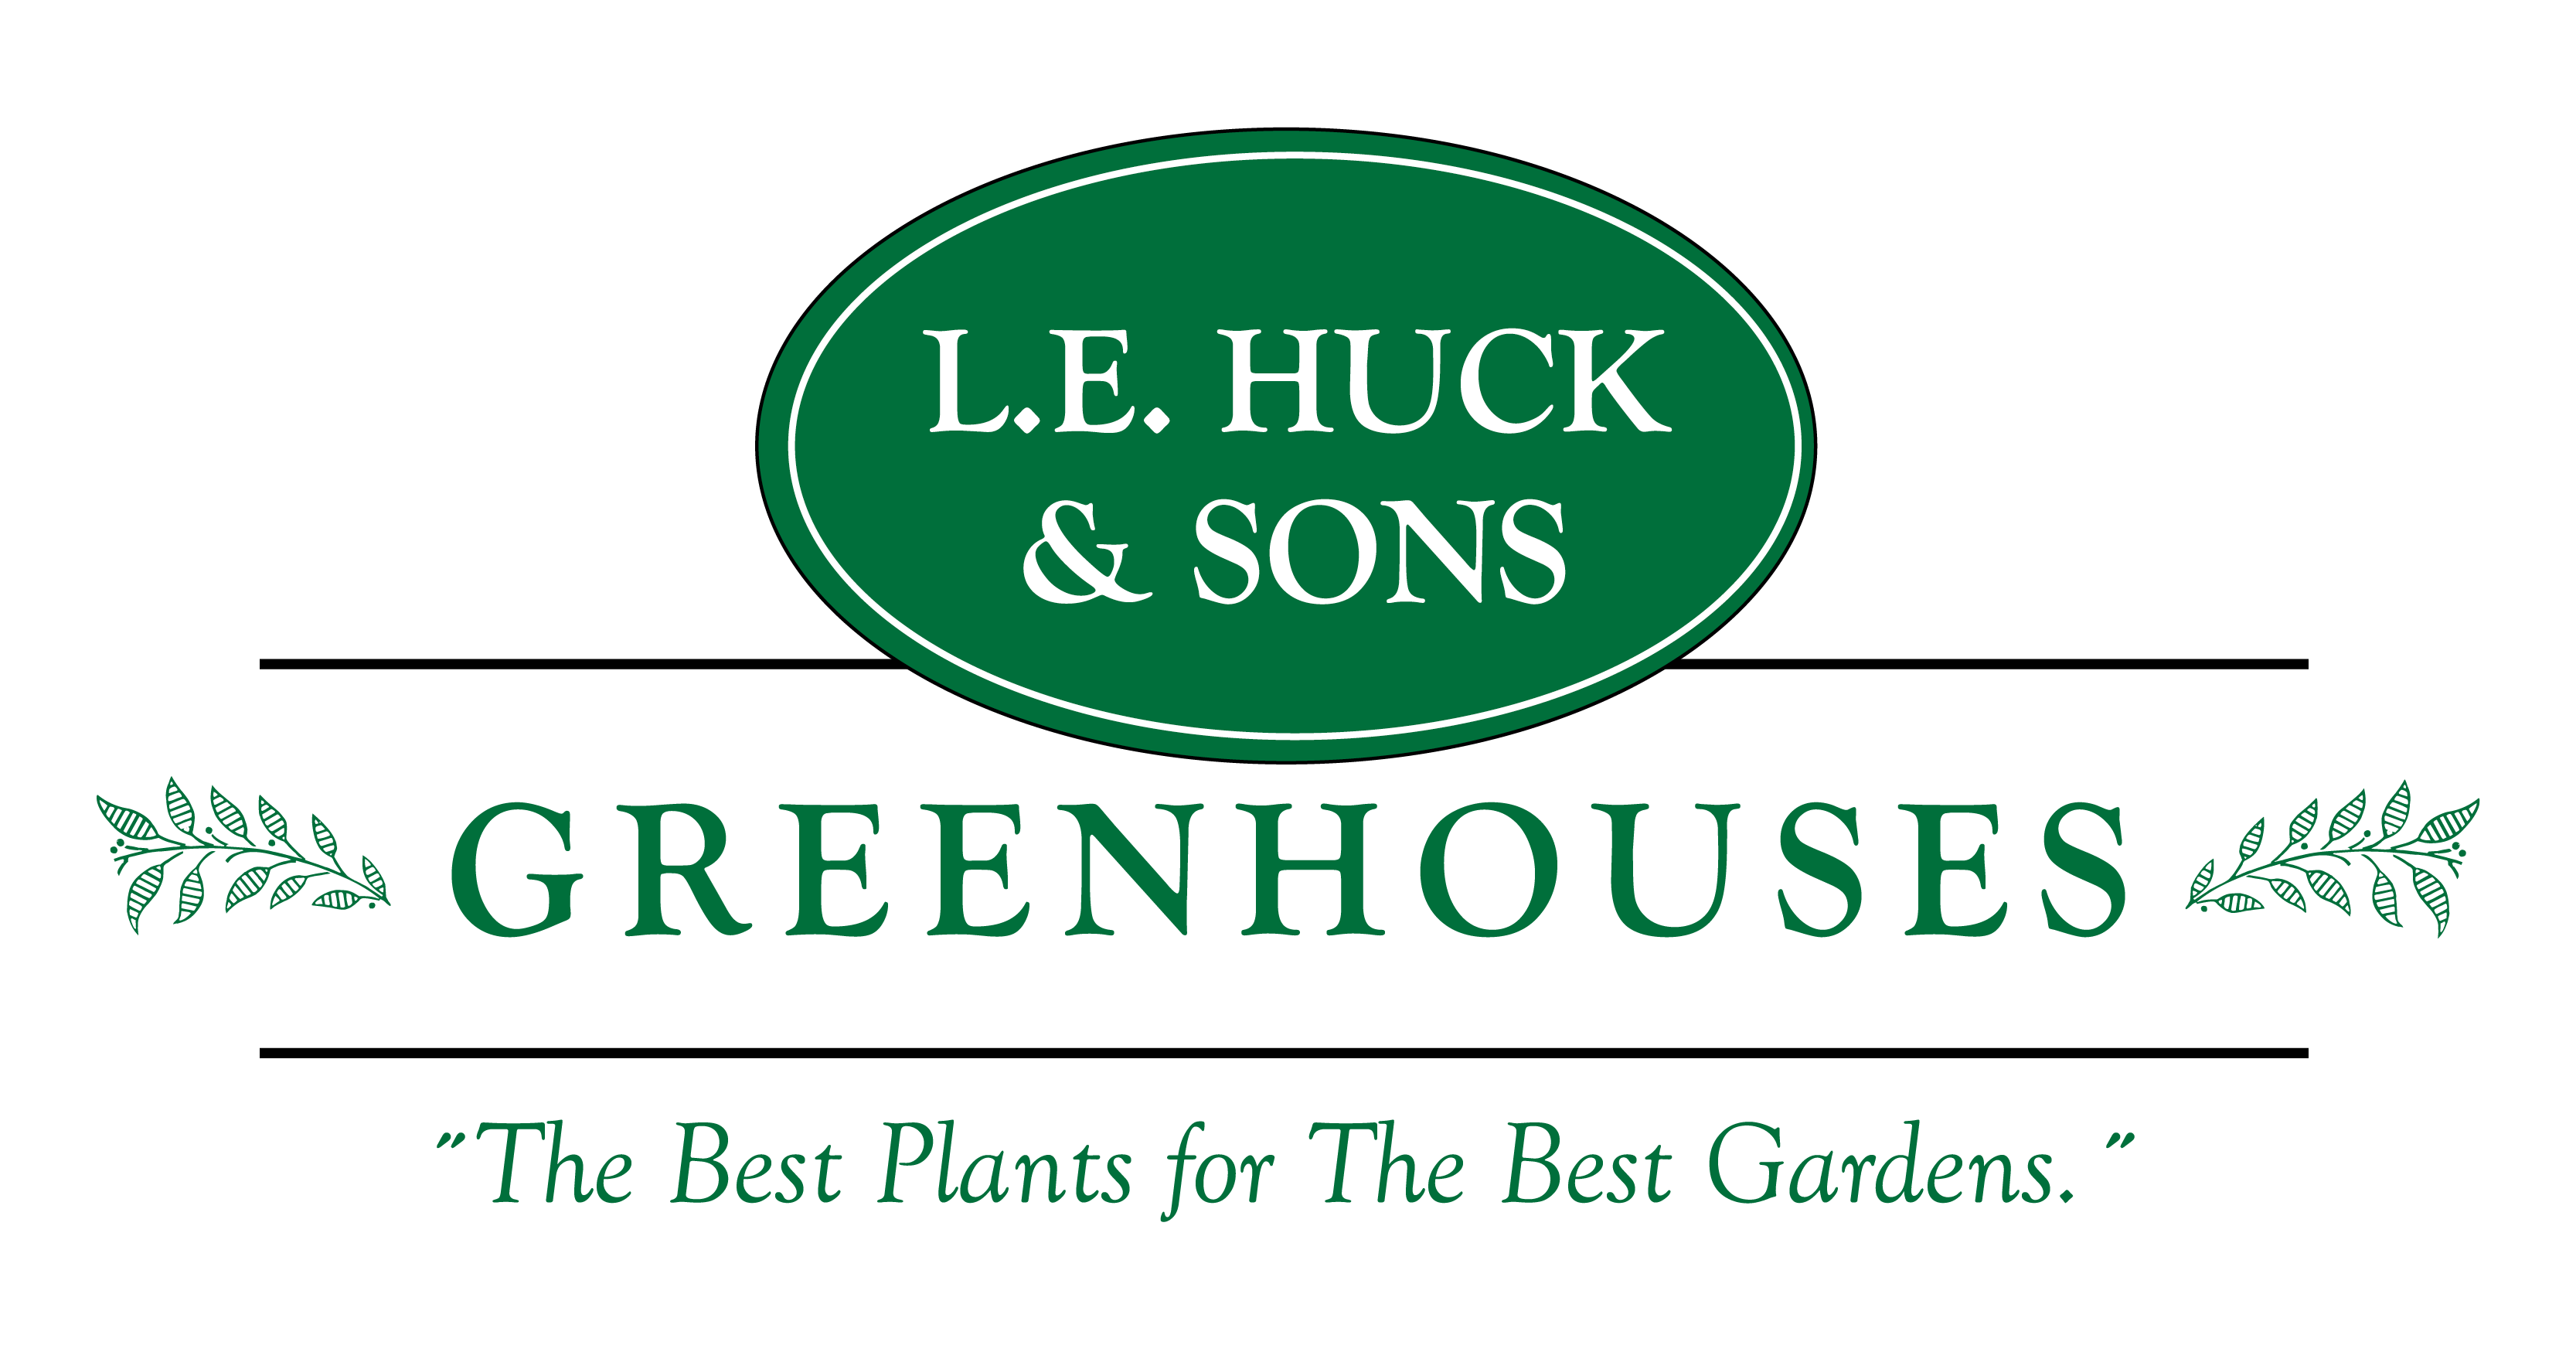 Huck Greenhouses